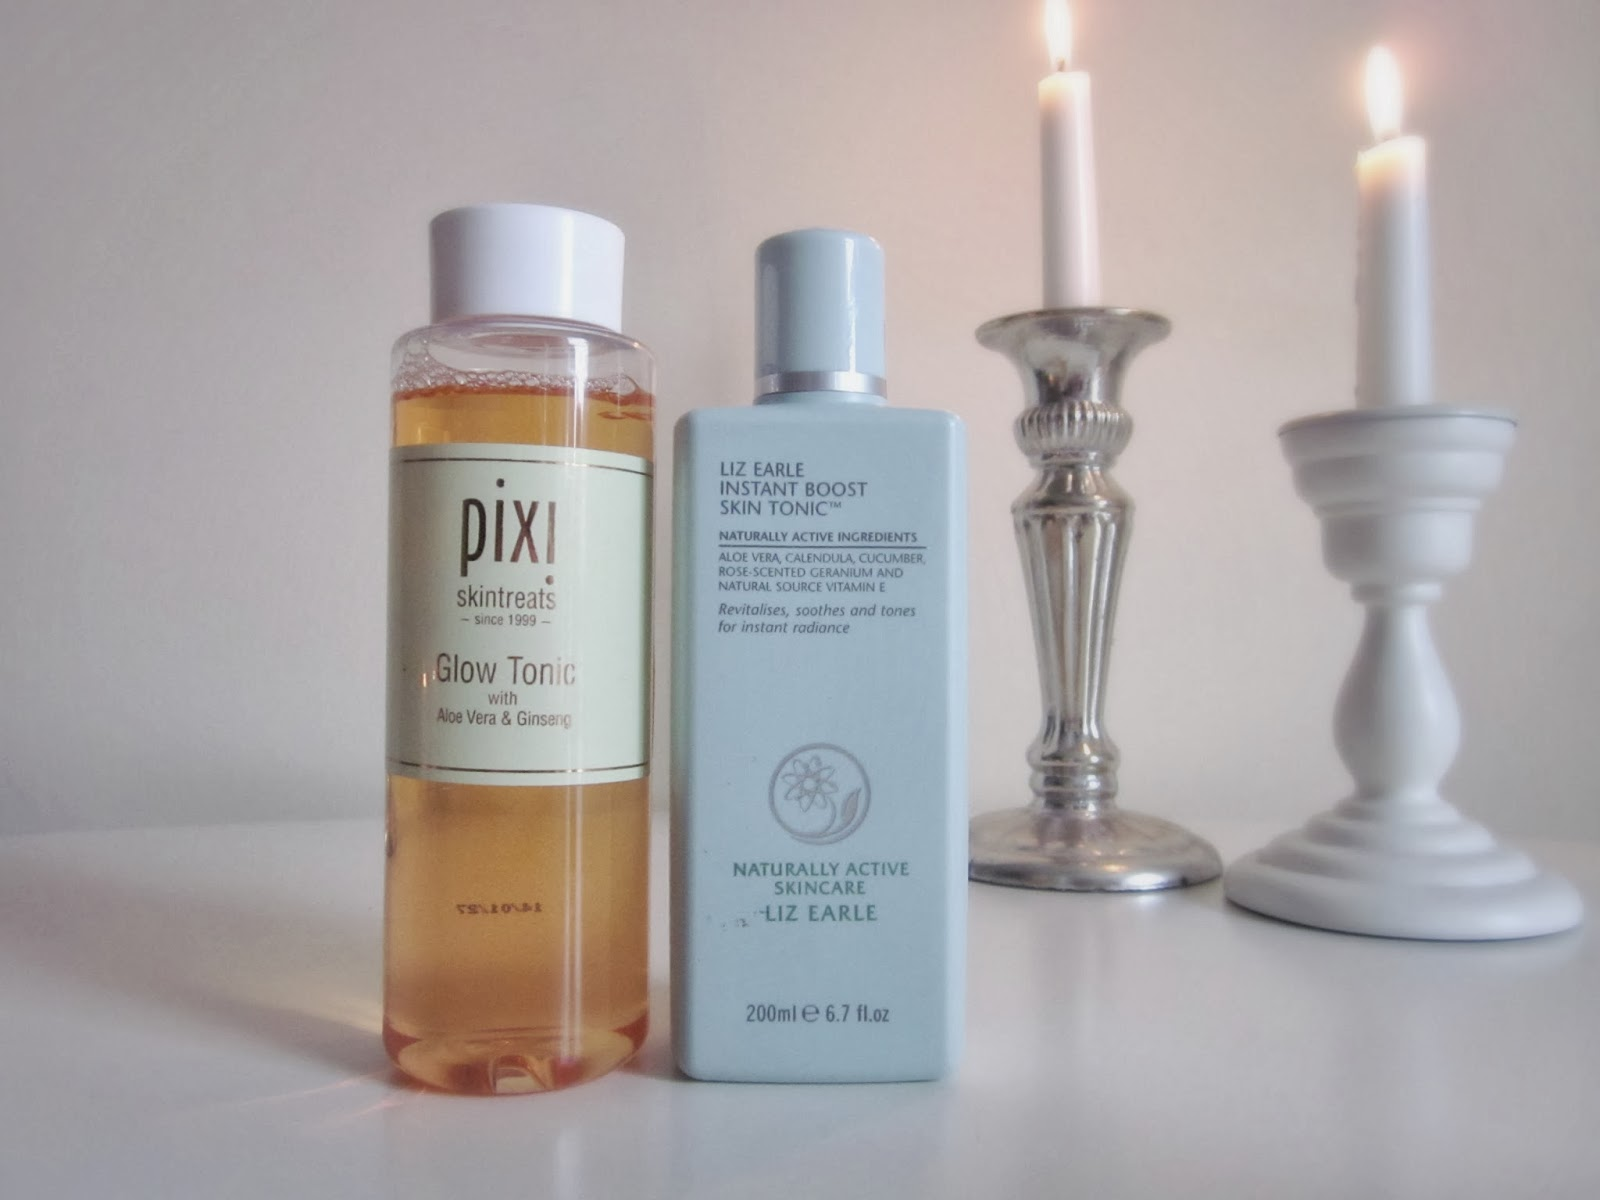 pixi glow tonic liz earle instant boost skin tonic review